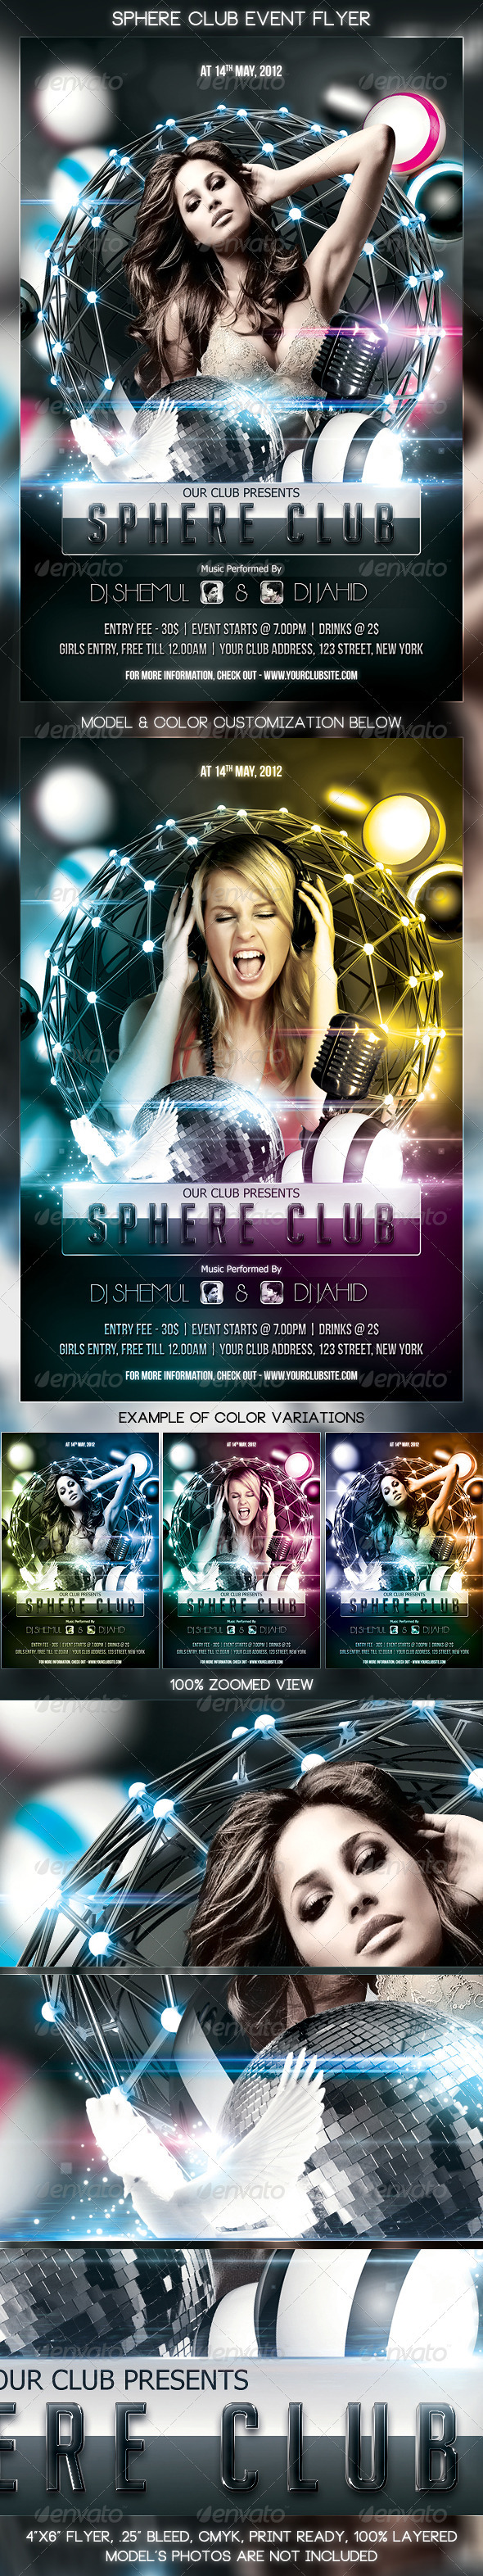 Sphere Club Event Flyer - Clubs & Parties Events